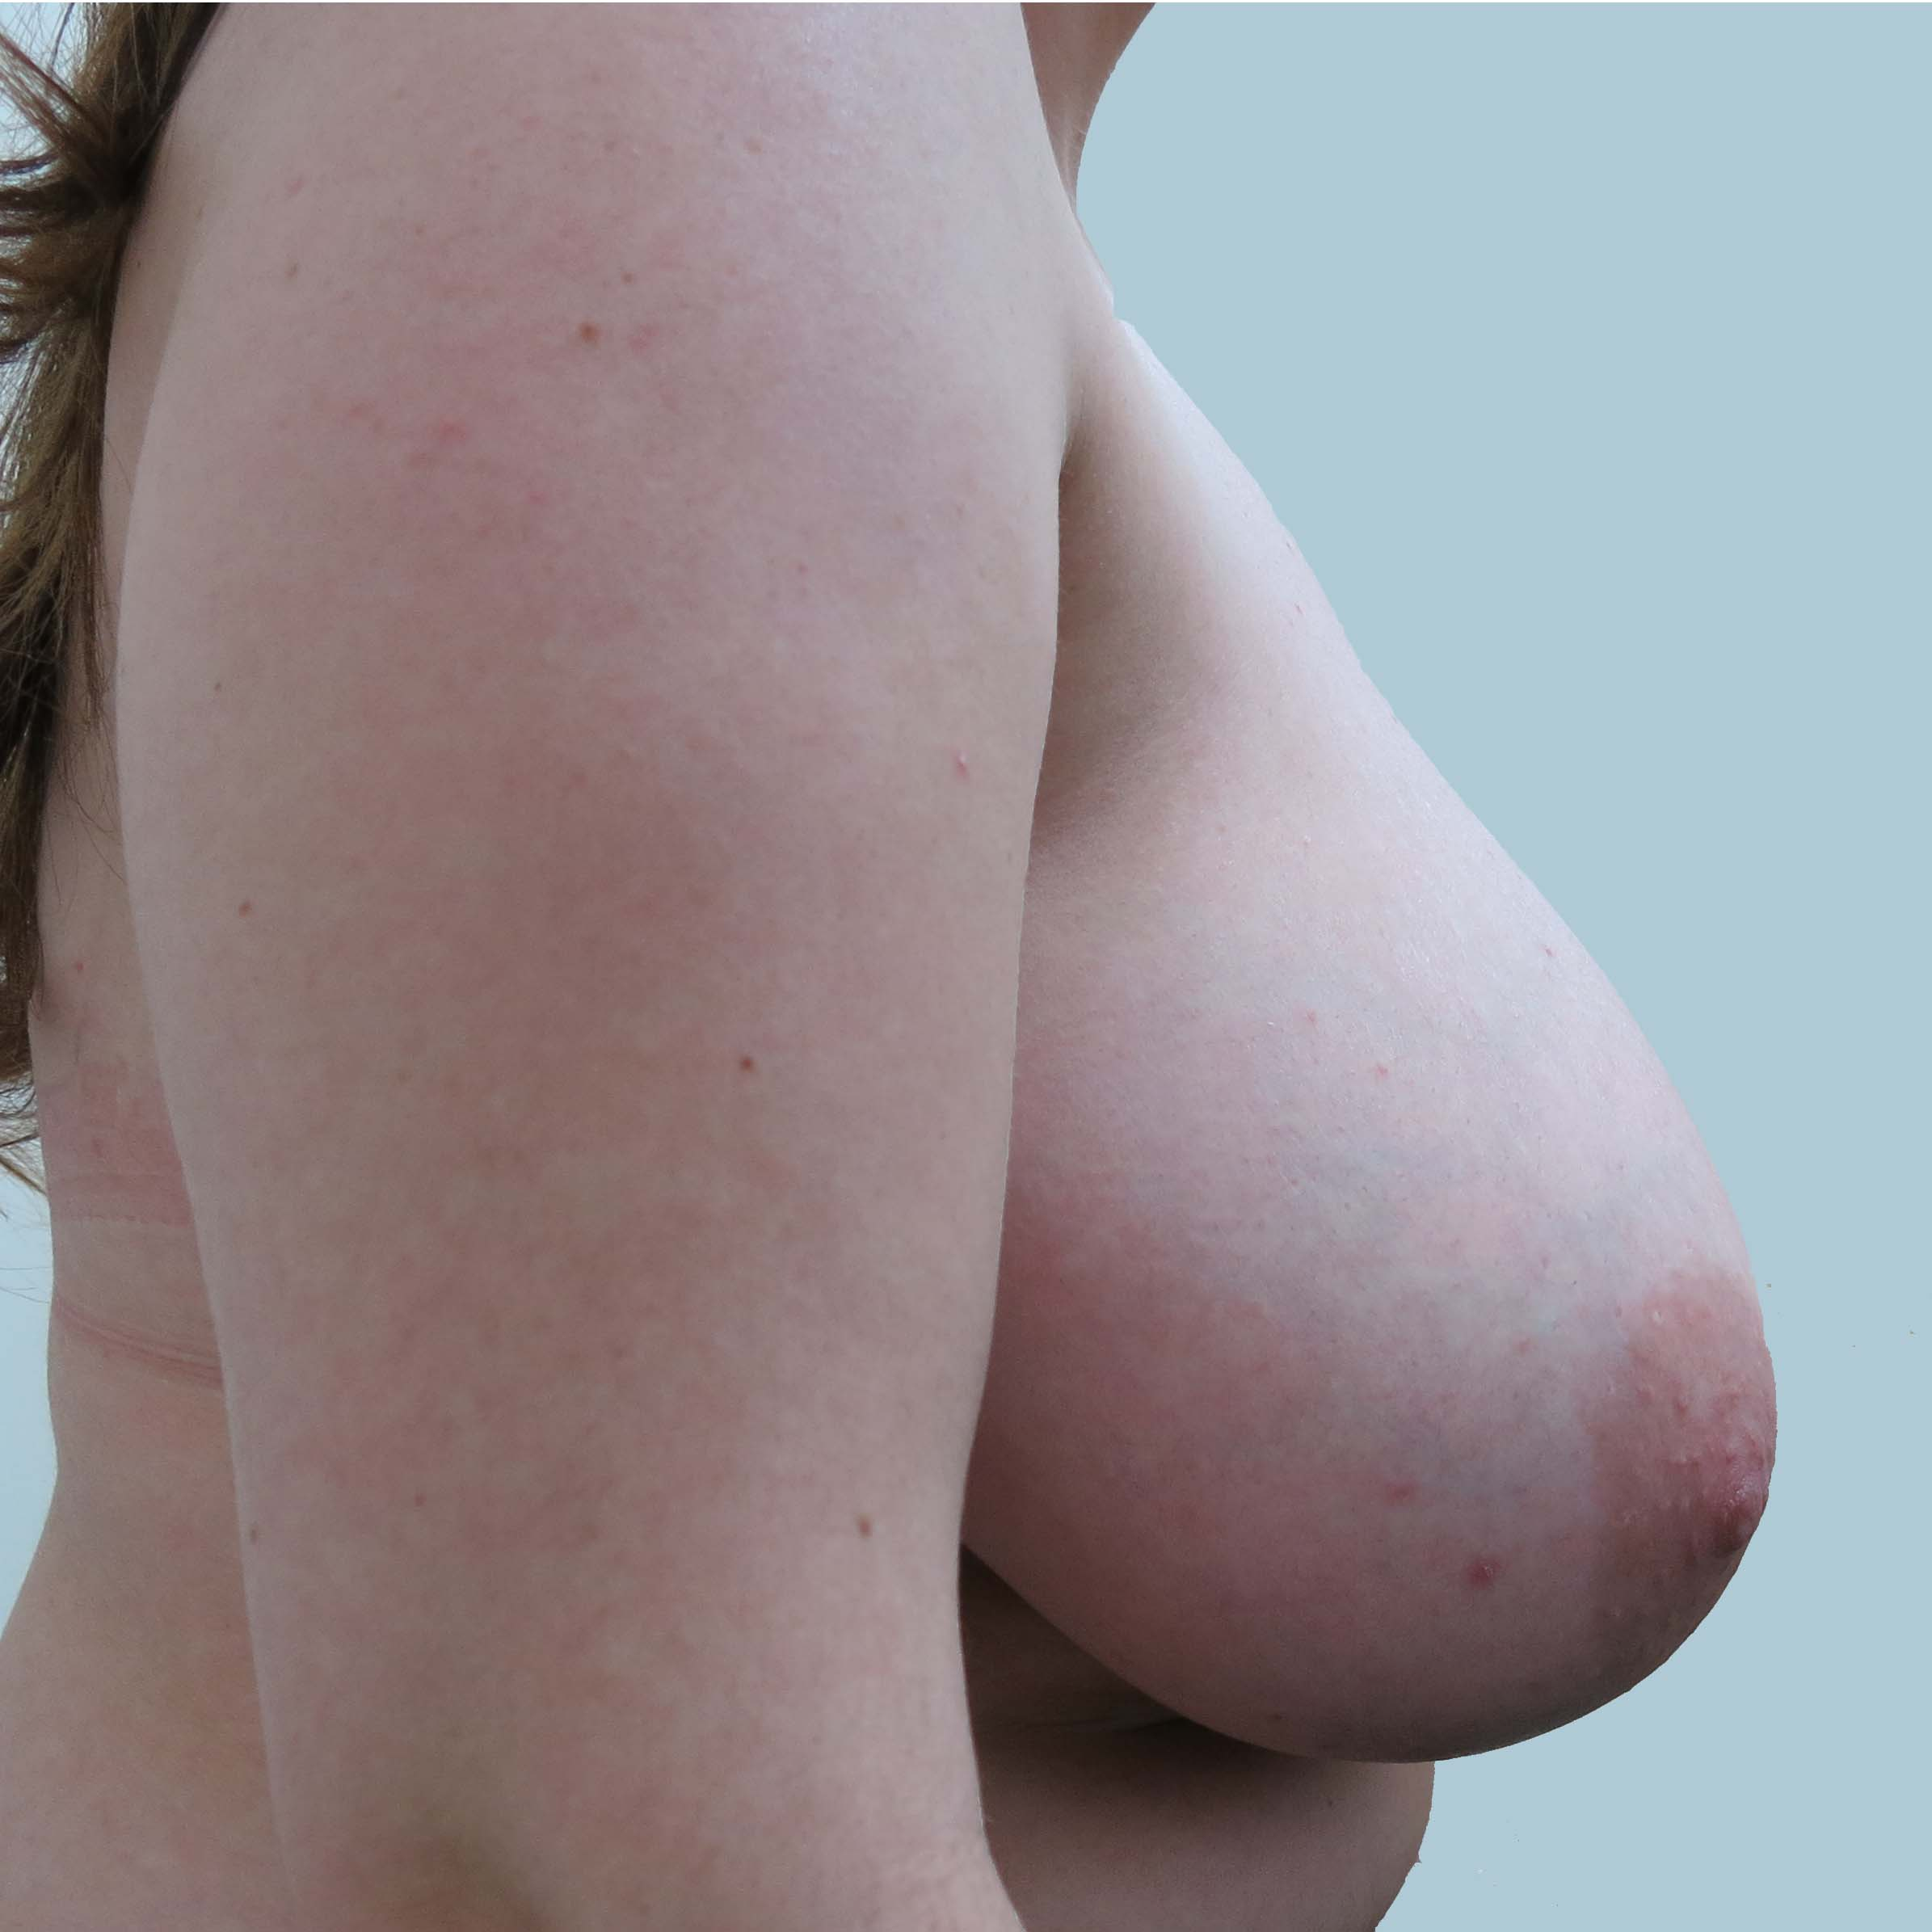 Preop lat F cup breasts causing upper back and neck pain